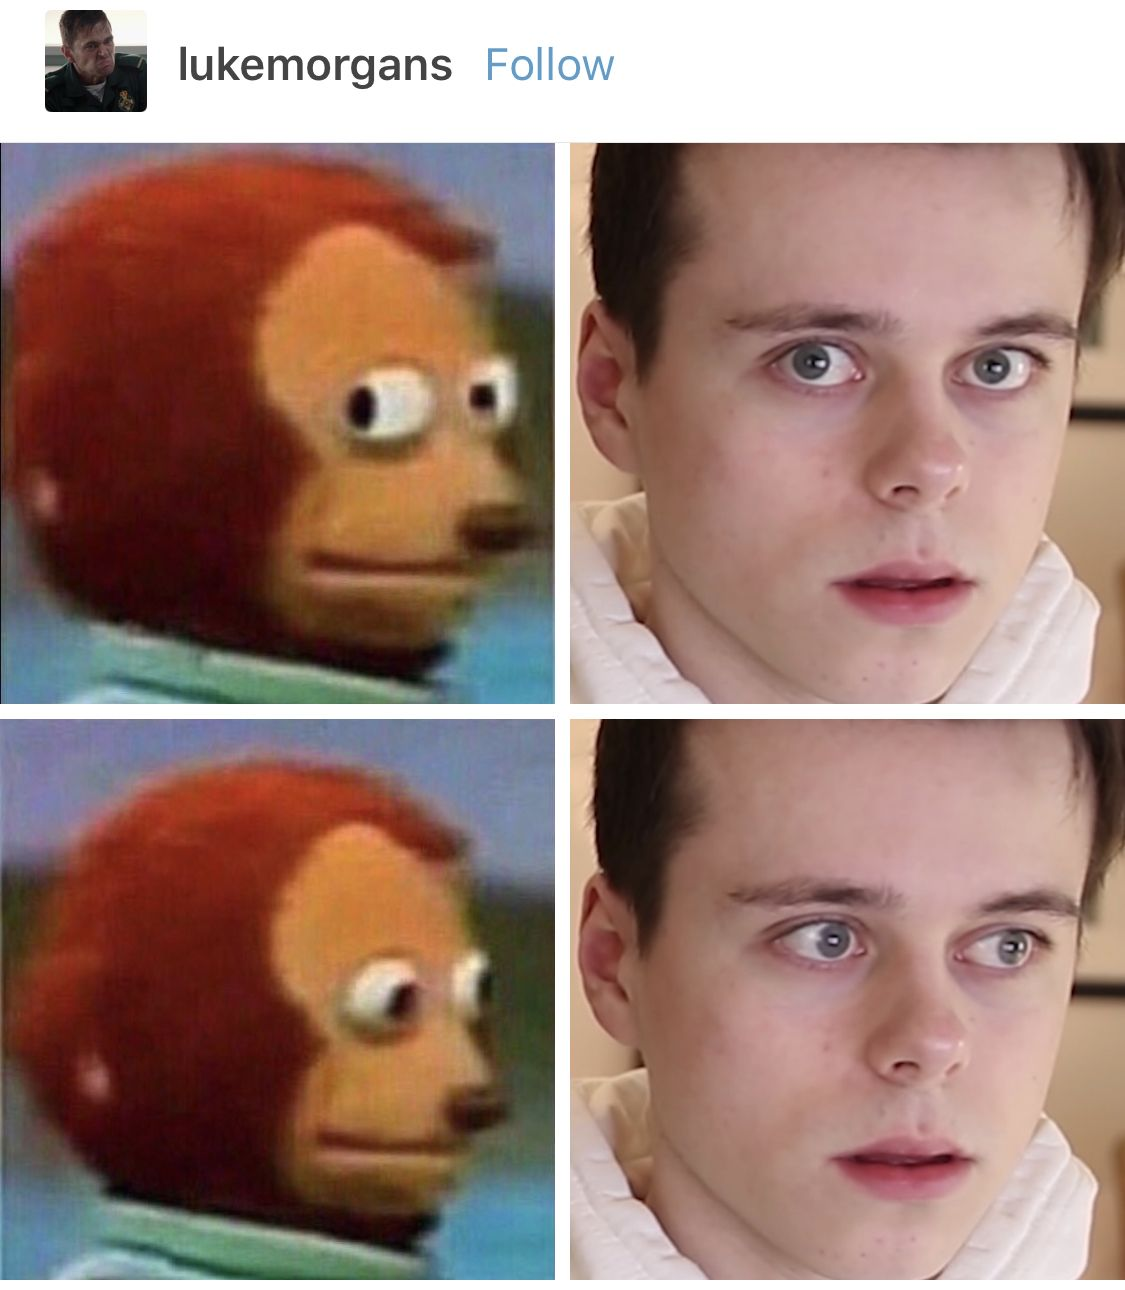 Pin By Closed On Imallexx Pretty Boy Swag Funny Images Funny Memes